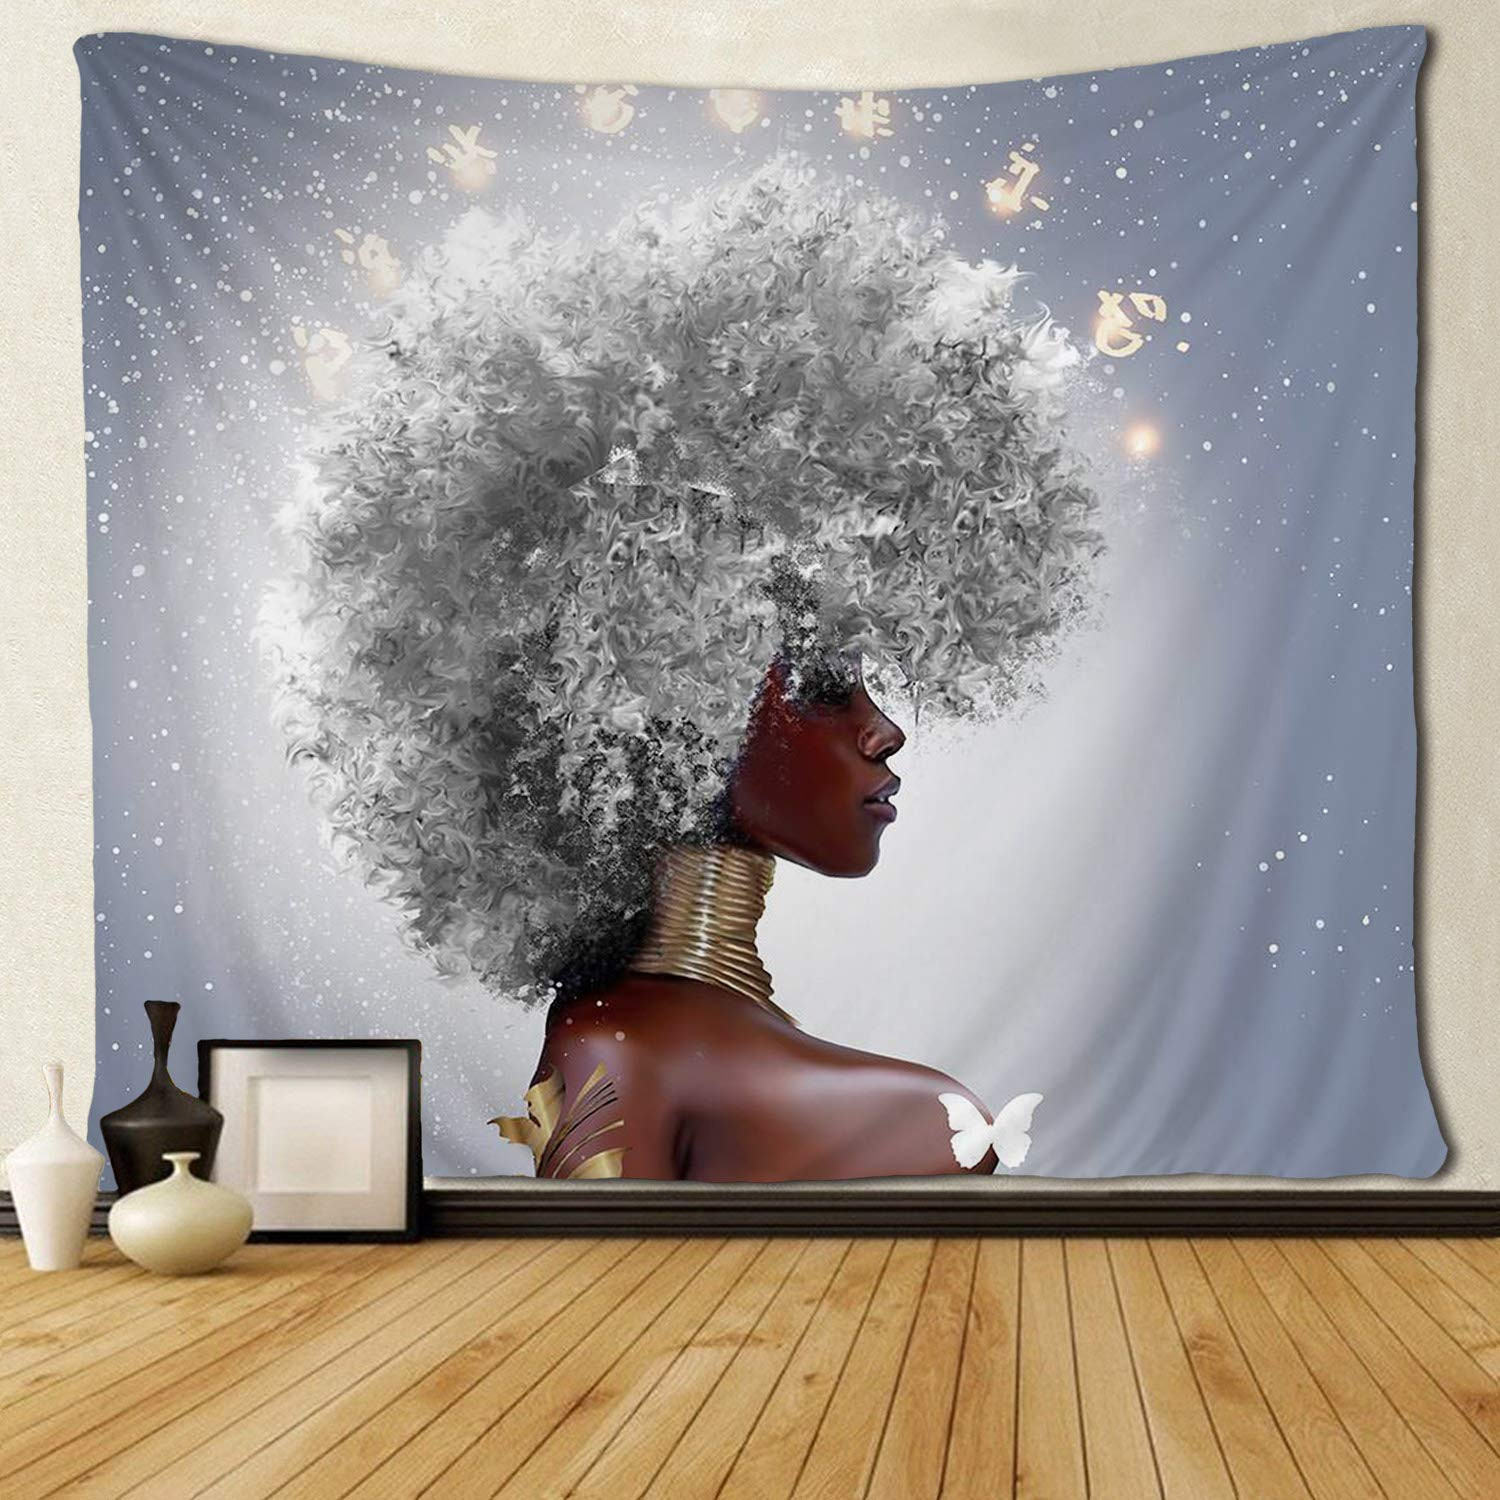 African Women Afro With White Hair Tapestries Hippie Art Wall Hanging For Bedroom Living Room Dorm Room